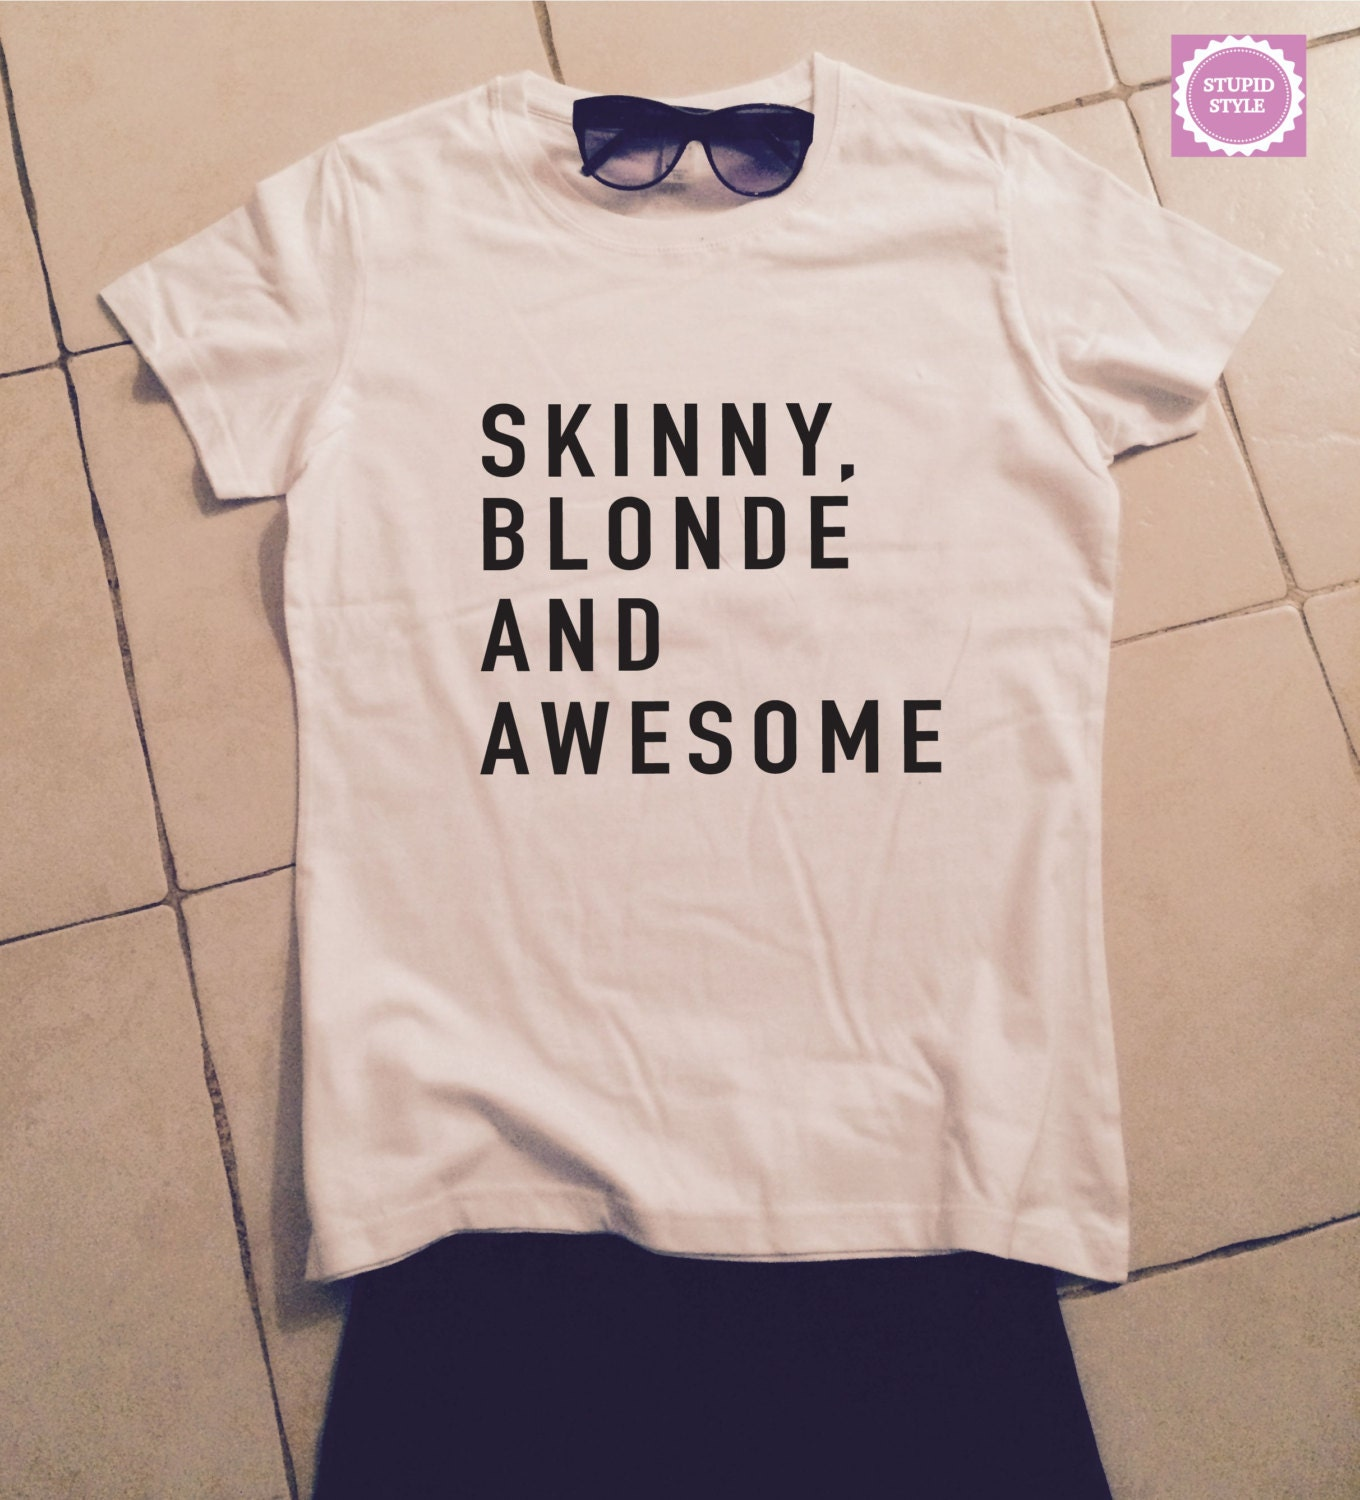 Skinny blonde and awesome t shirts for women tshirts This guy has an awesome girlfriend shirt